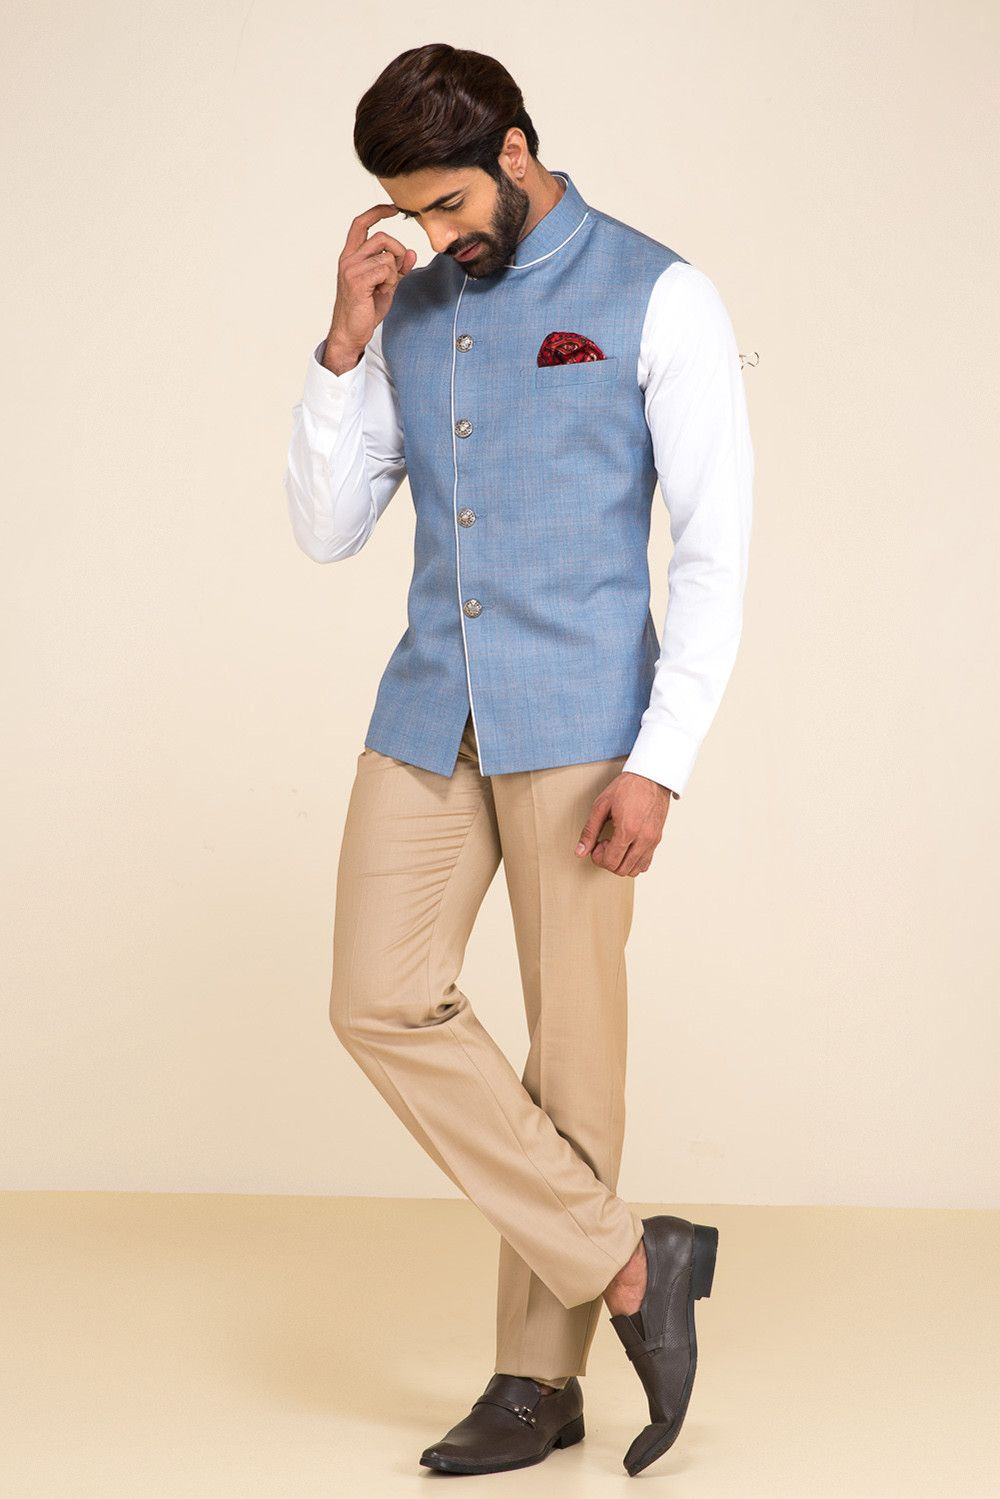 fb512088355a4f Oshnaar Blue Plaid Nehru Jacket With White Shirt And Beige Pants. #flyrobe  #groom #groomwear #groomsherwani #sherwani #flyrobe #wedding  #designersherwani